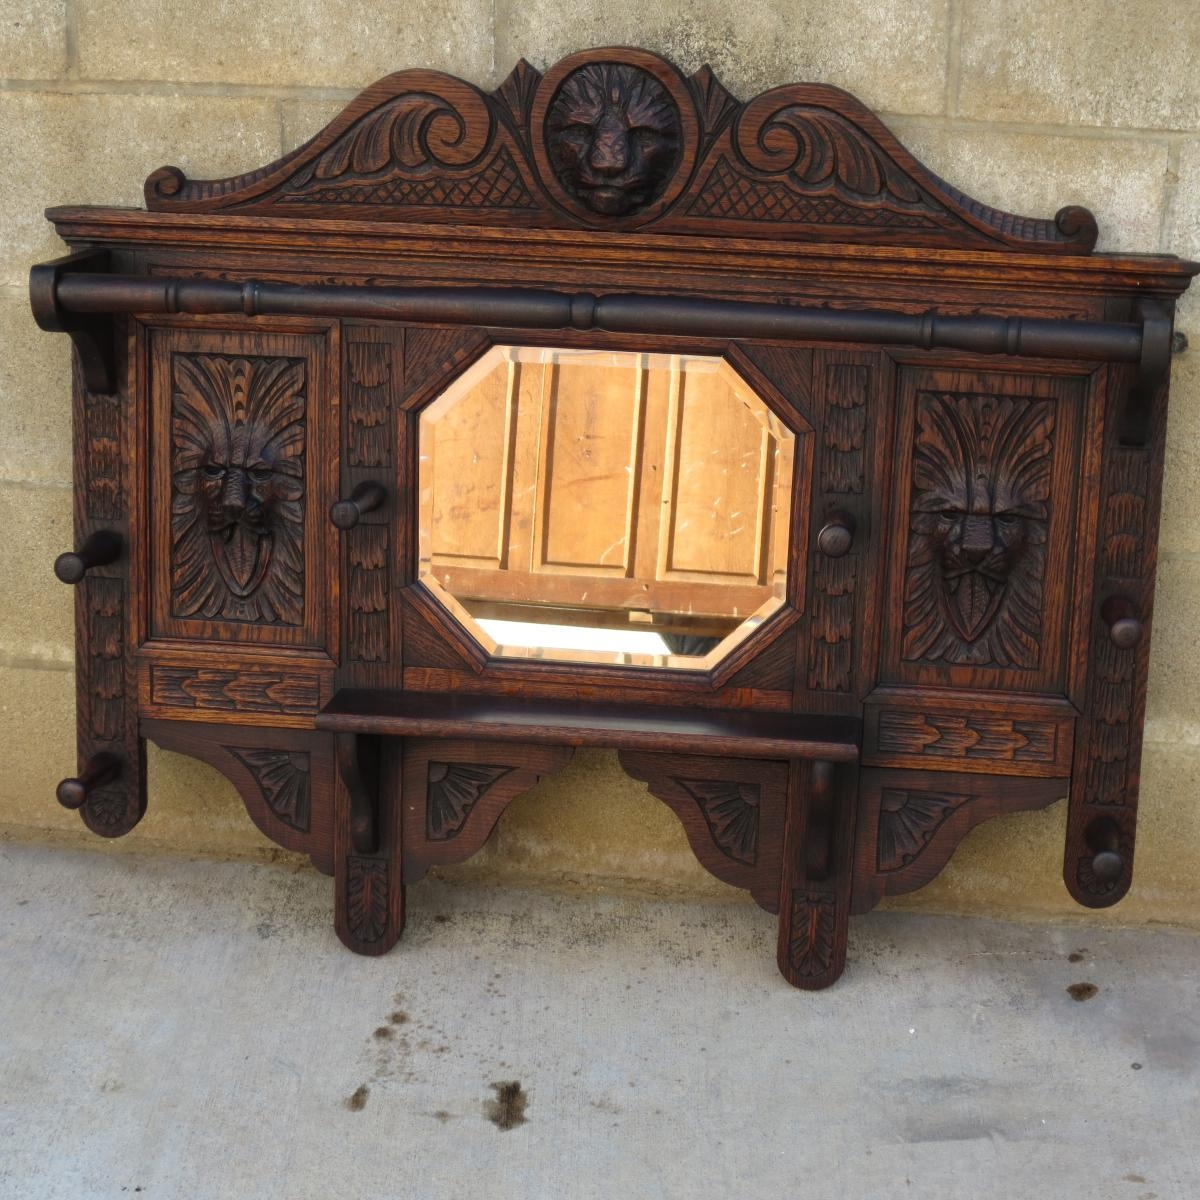 Antique Mirrors, Vintage Mirrors, Antique Wall Mirrors, And French Regarding Antique Wall Mirror (Image 3 of 20)